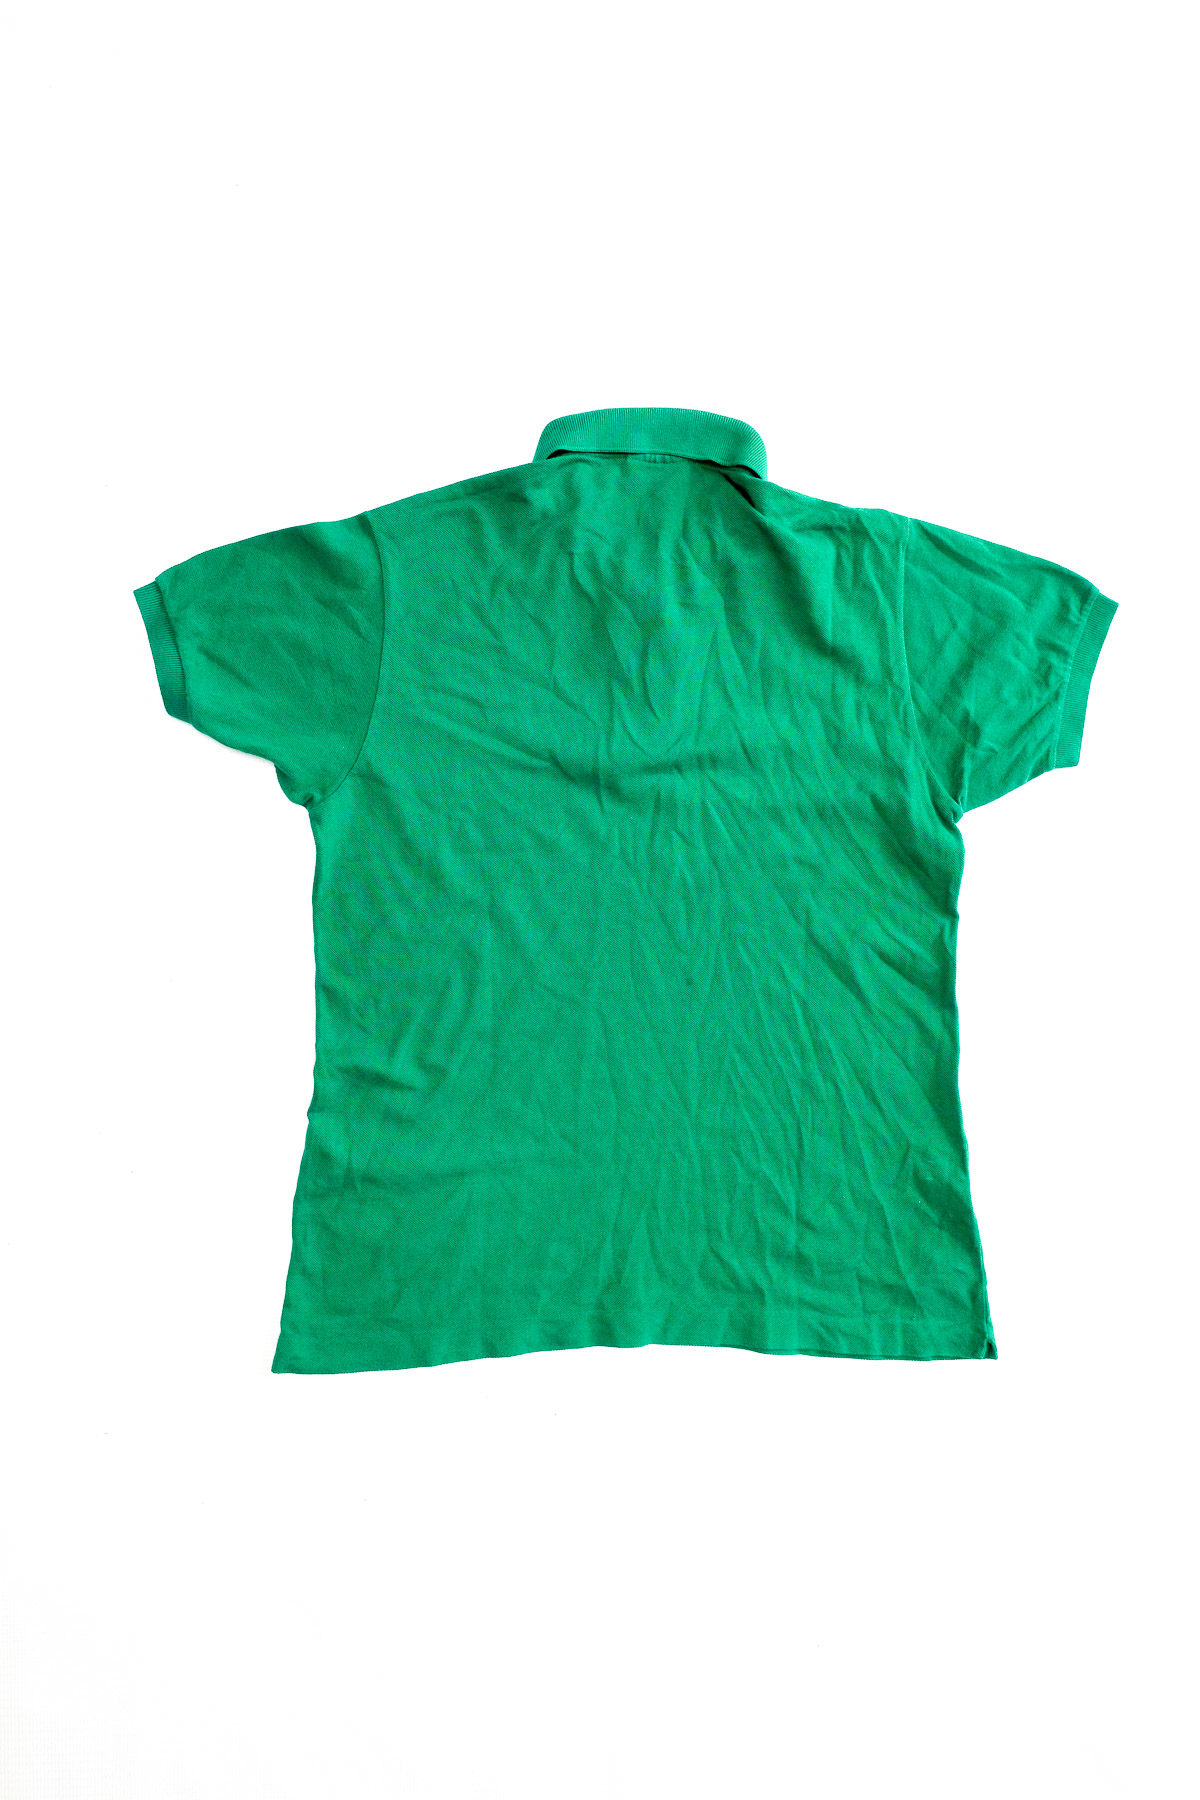 Lacoste POLO VINTAGE Green